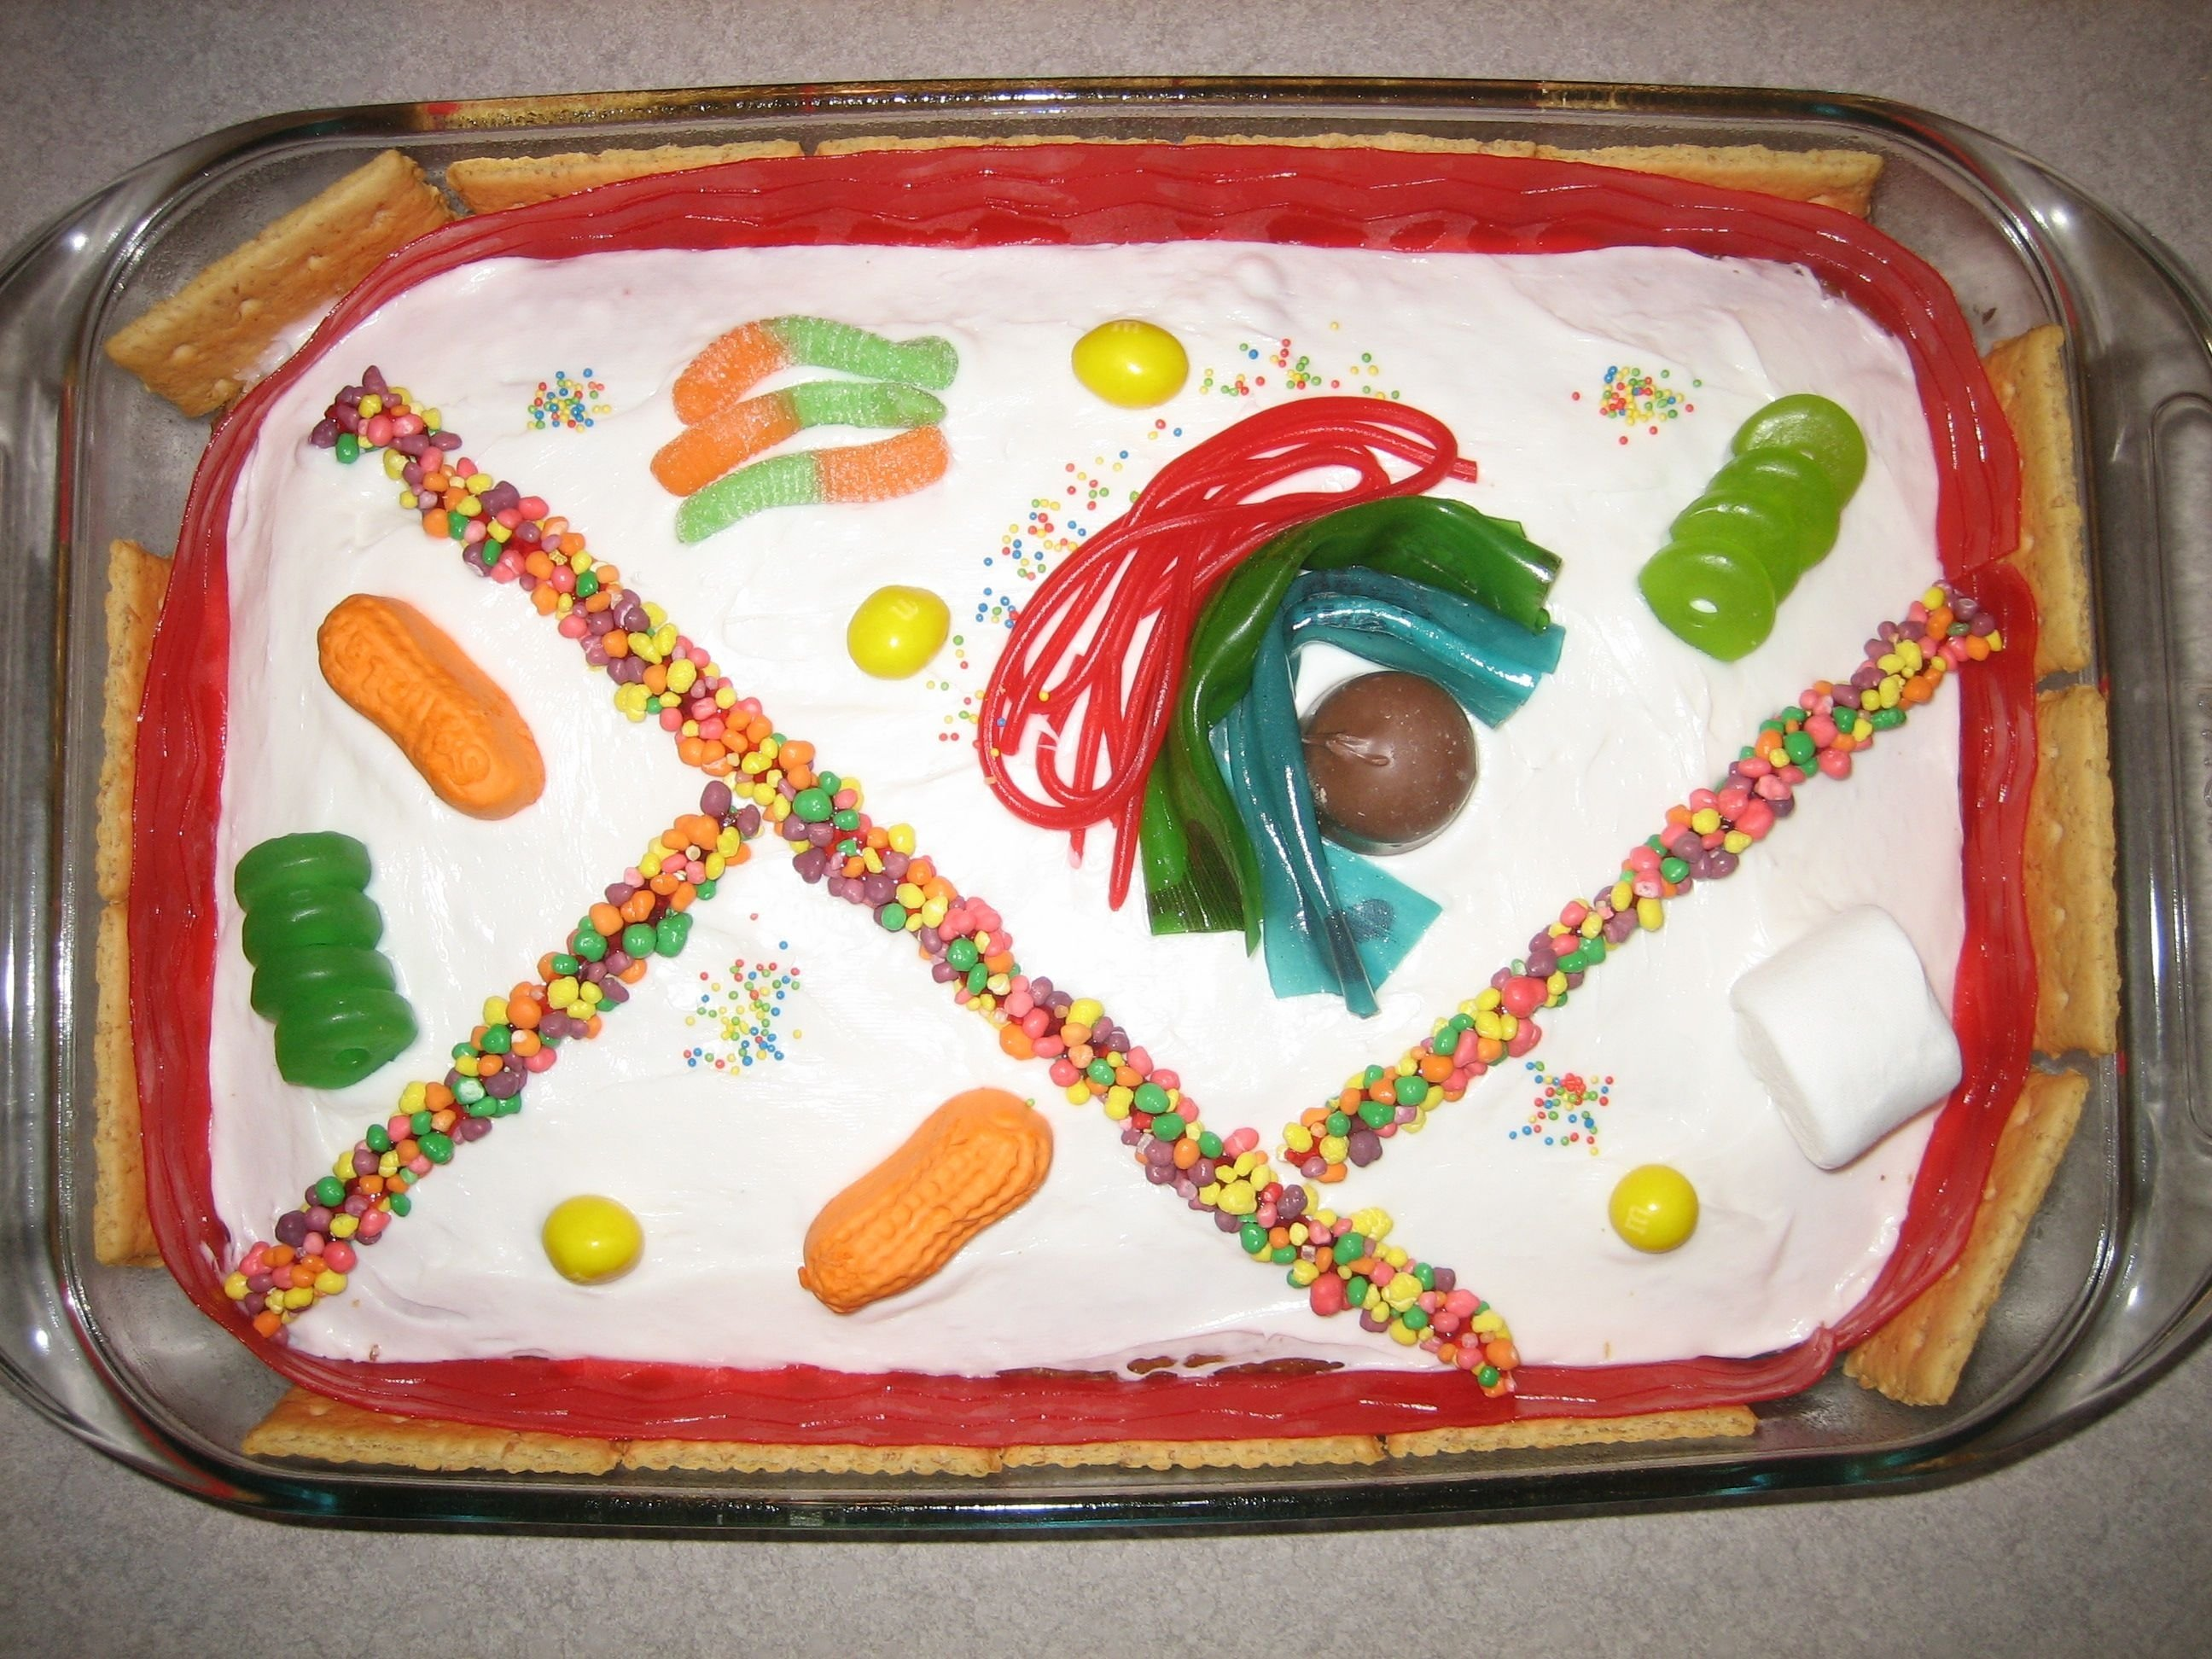 10 Ideal Edible Plant Cell Project Ideas edible plant cell for the next time i have to do this project for 2020